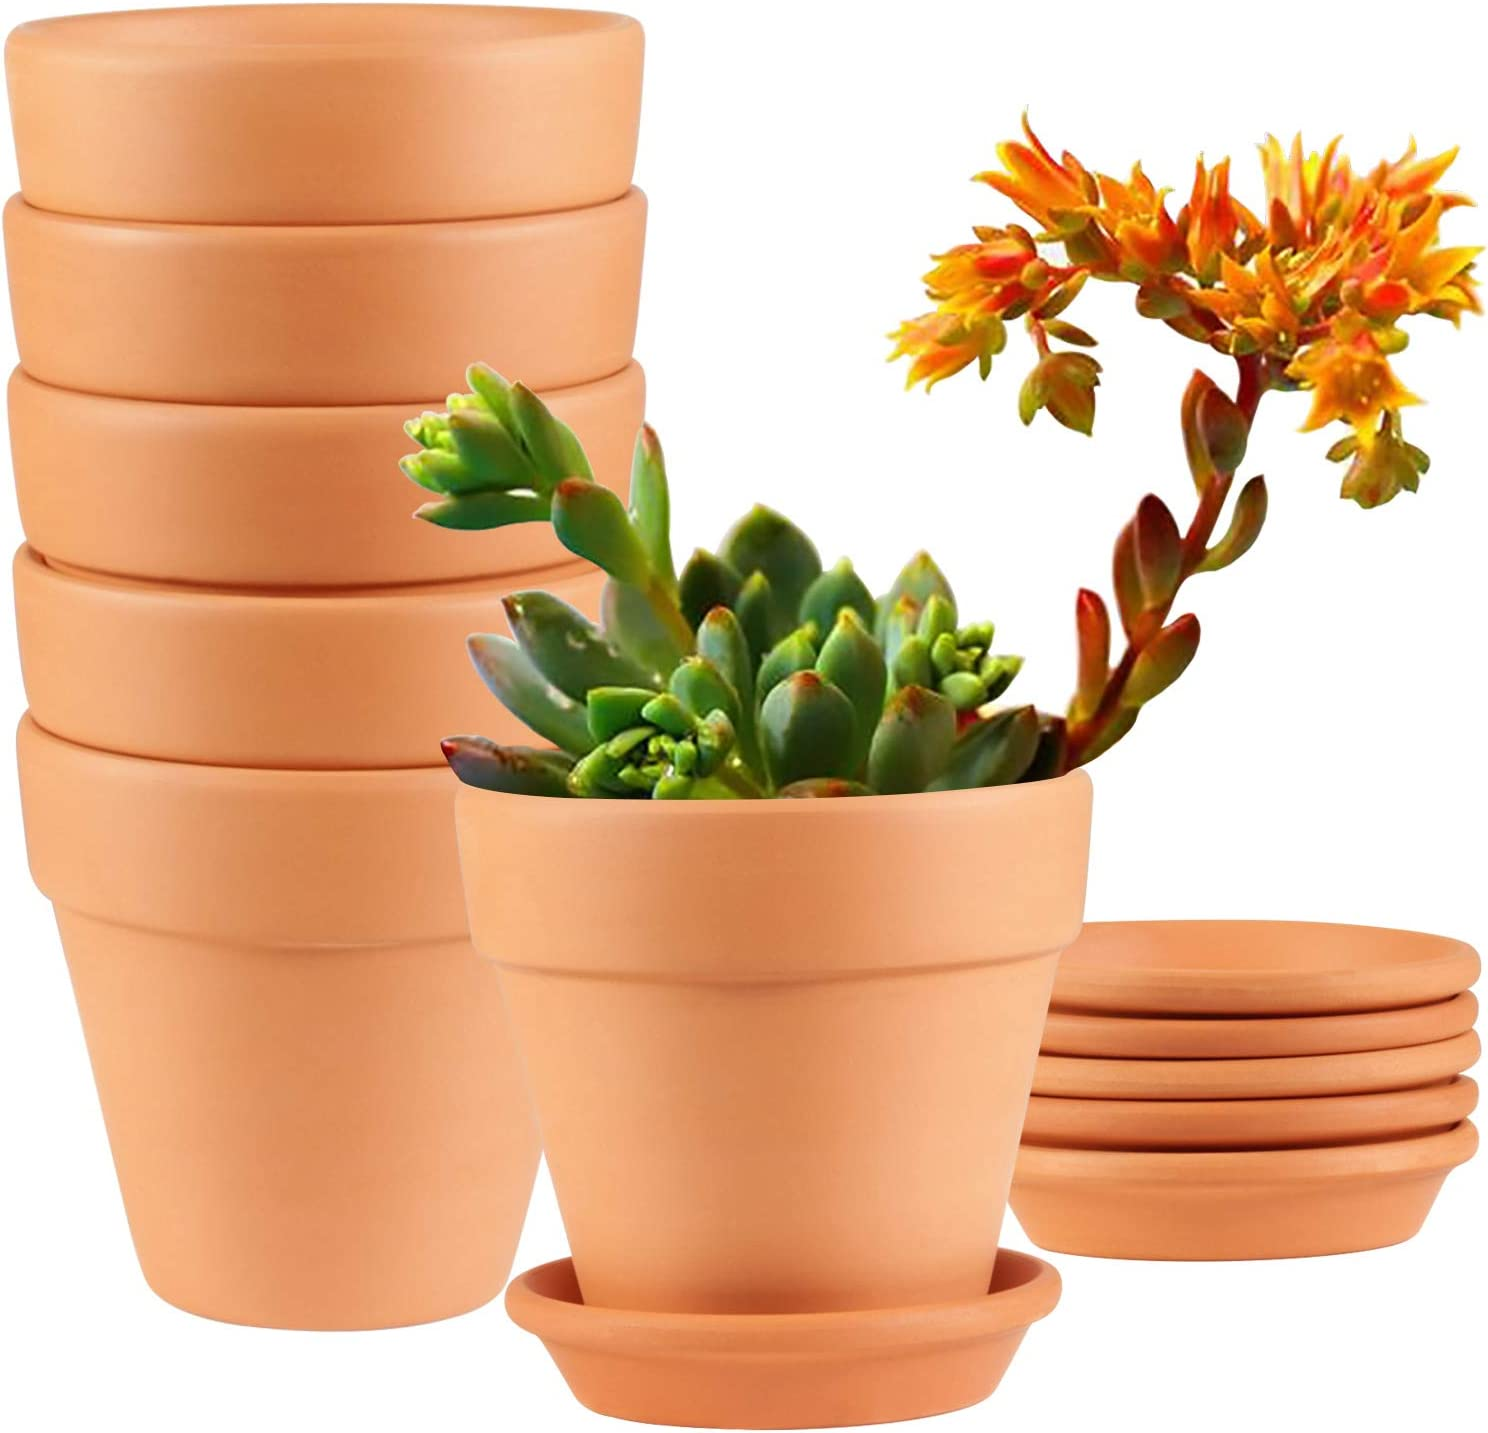 Clay Pots, EHWINE 4 inch Clay Pots for Plants with Saucer Cute Garden Pots Succulent Planters Cactus Flower Pots with Drainage, Set of 6(Plants Not Included)